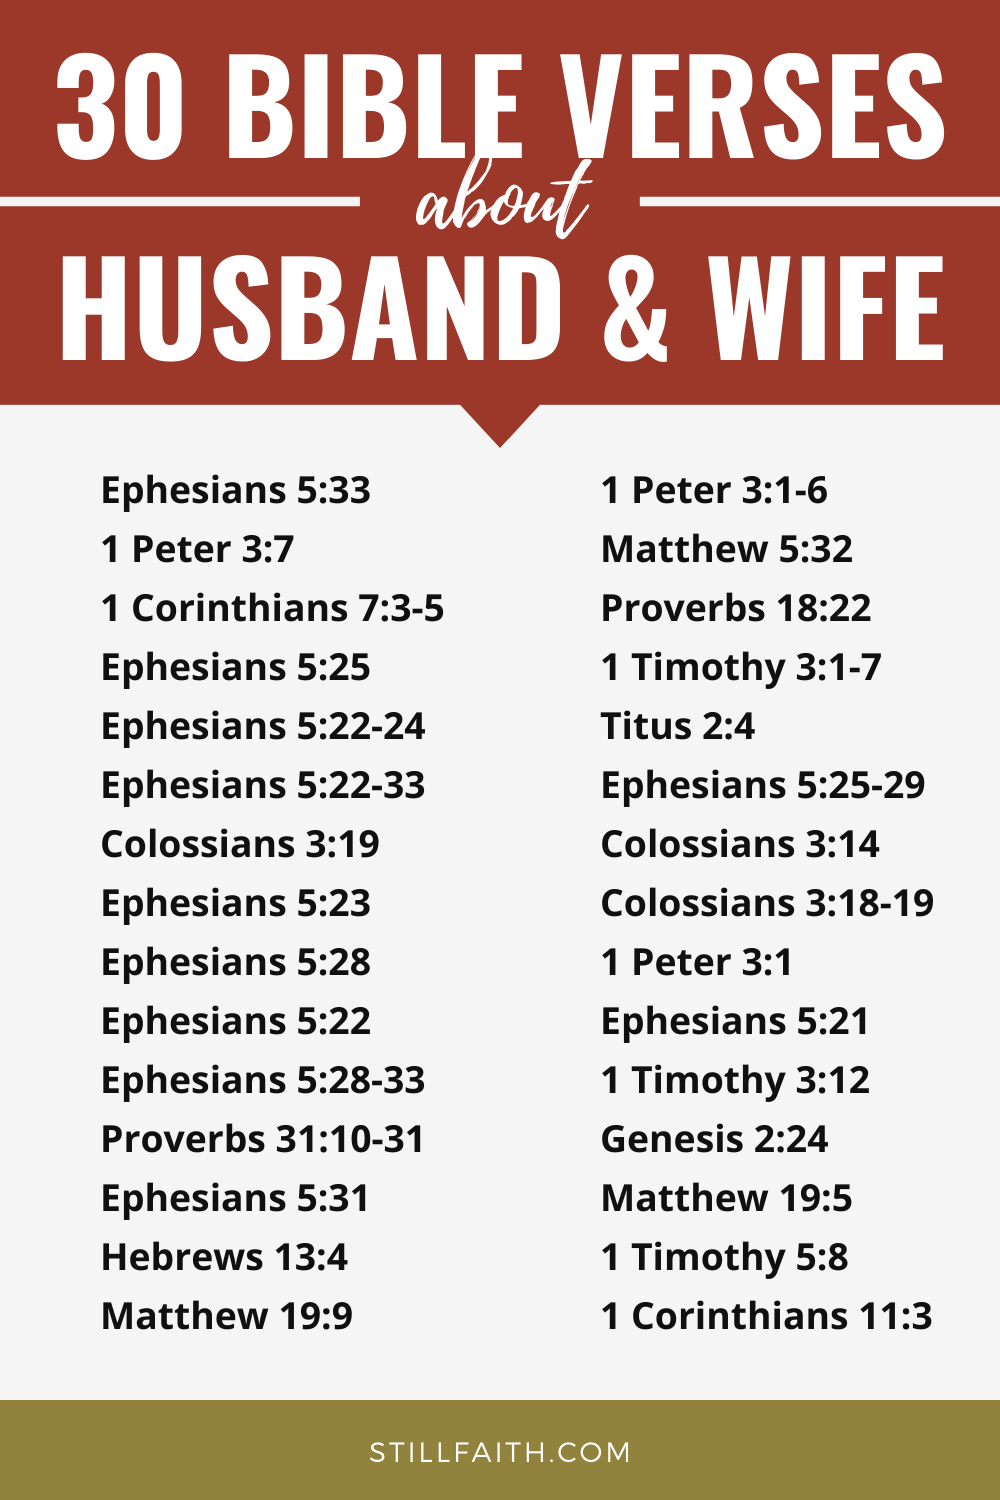 99 Bible Verses about Husband and Wife